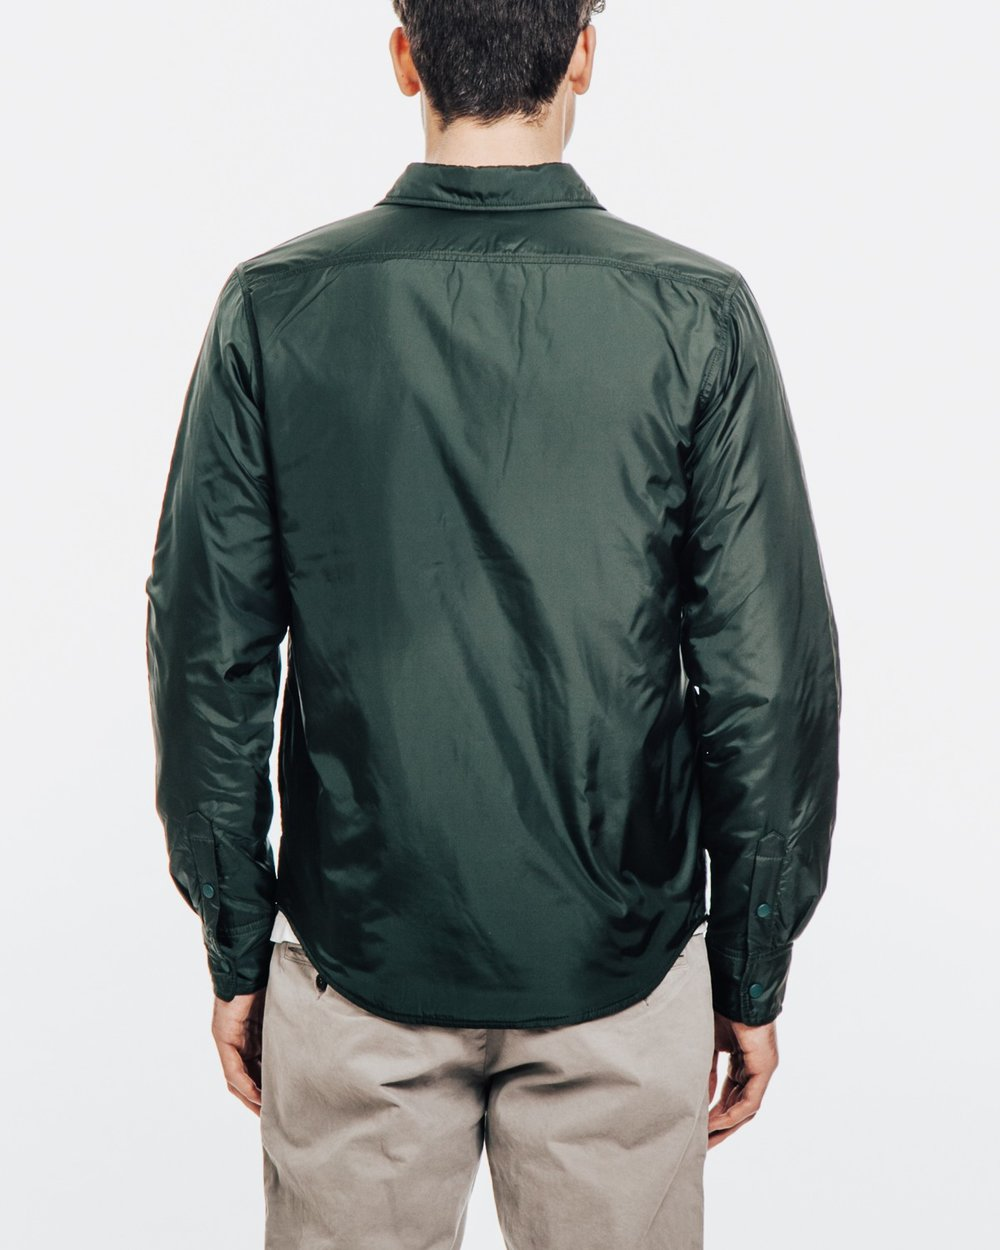 aspesi-marvin-shirt-jacket-dark-green-4.jpg